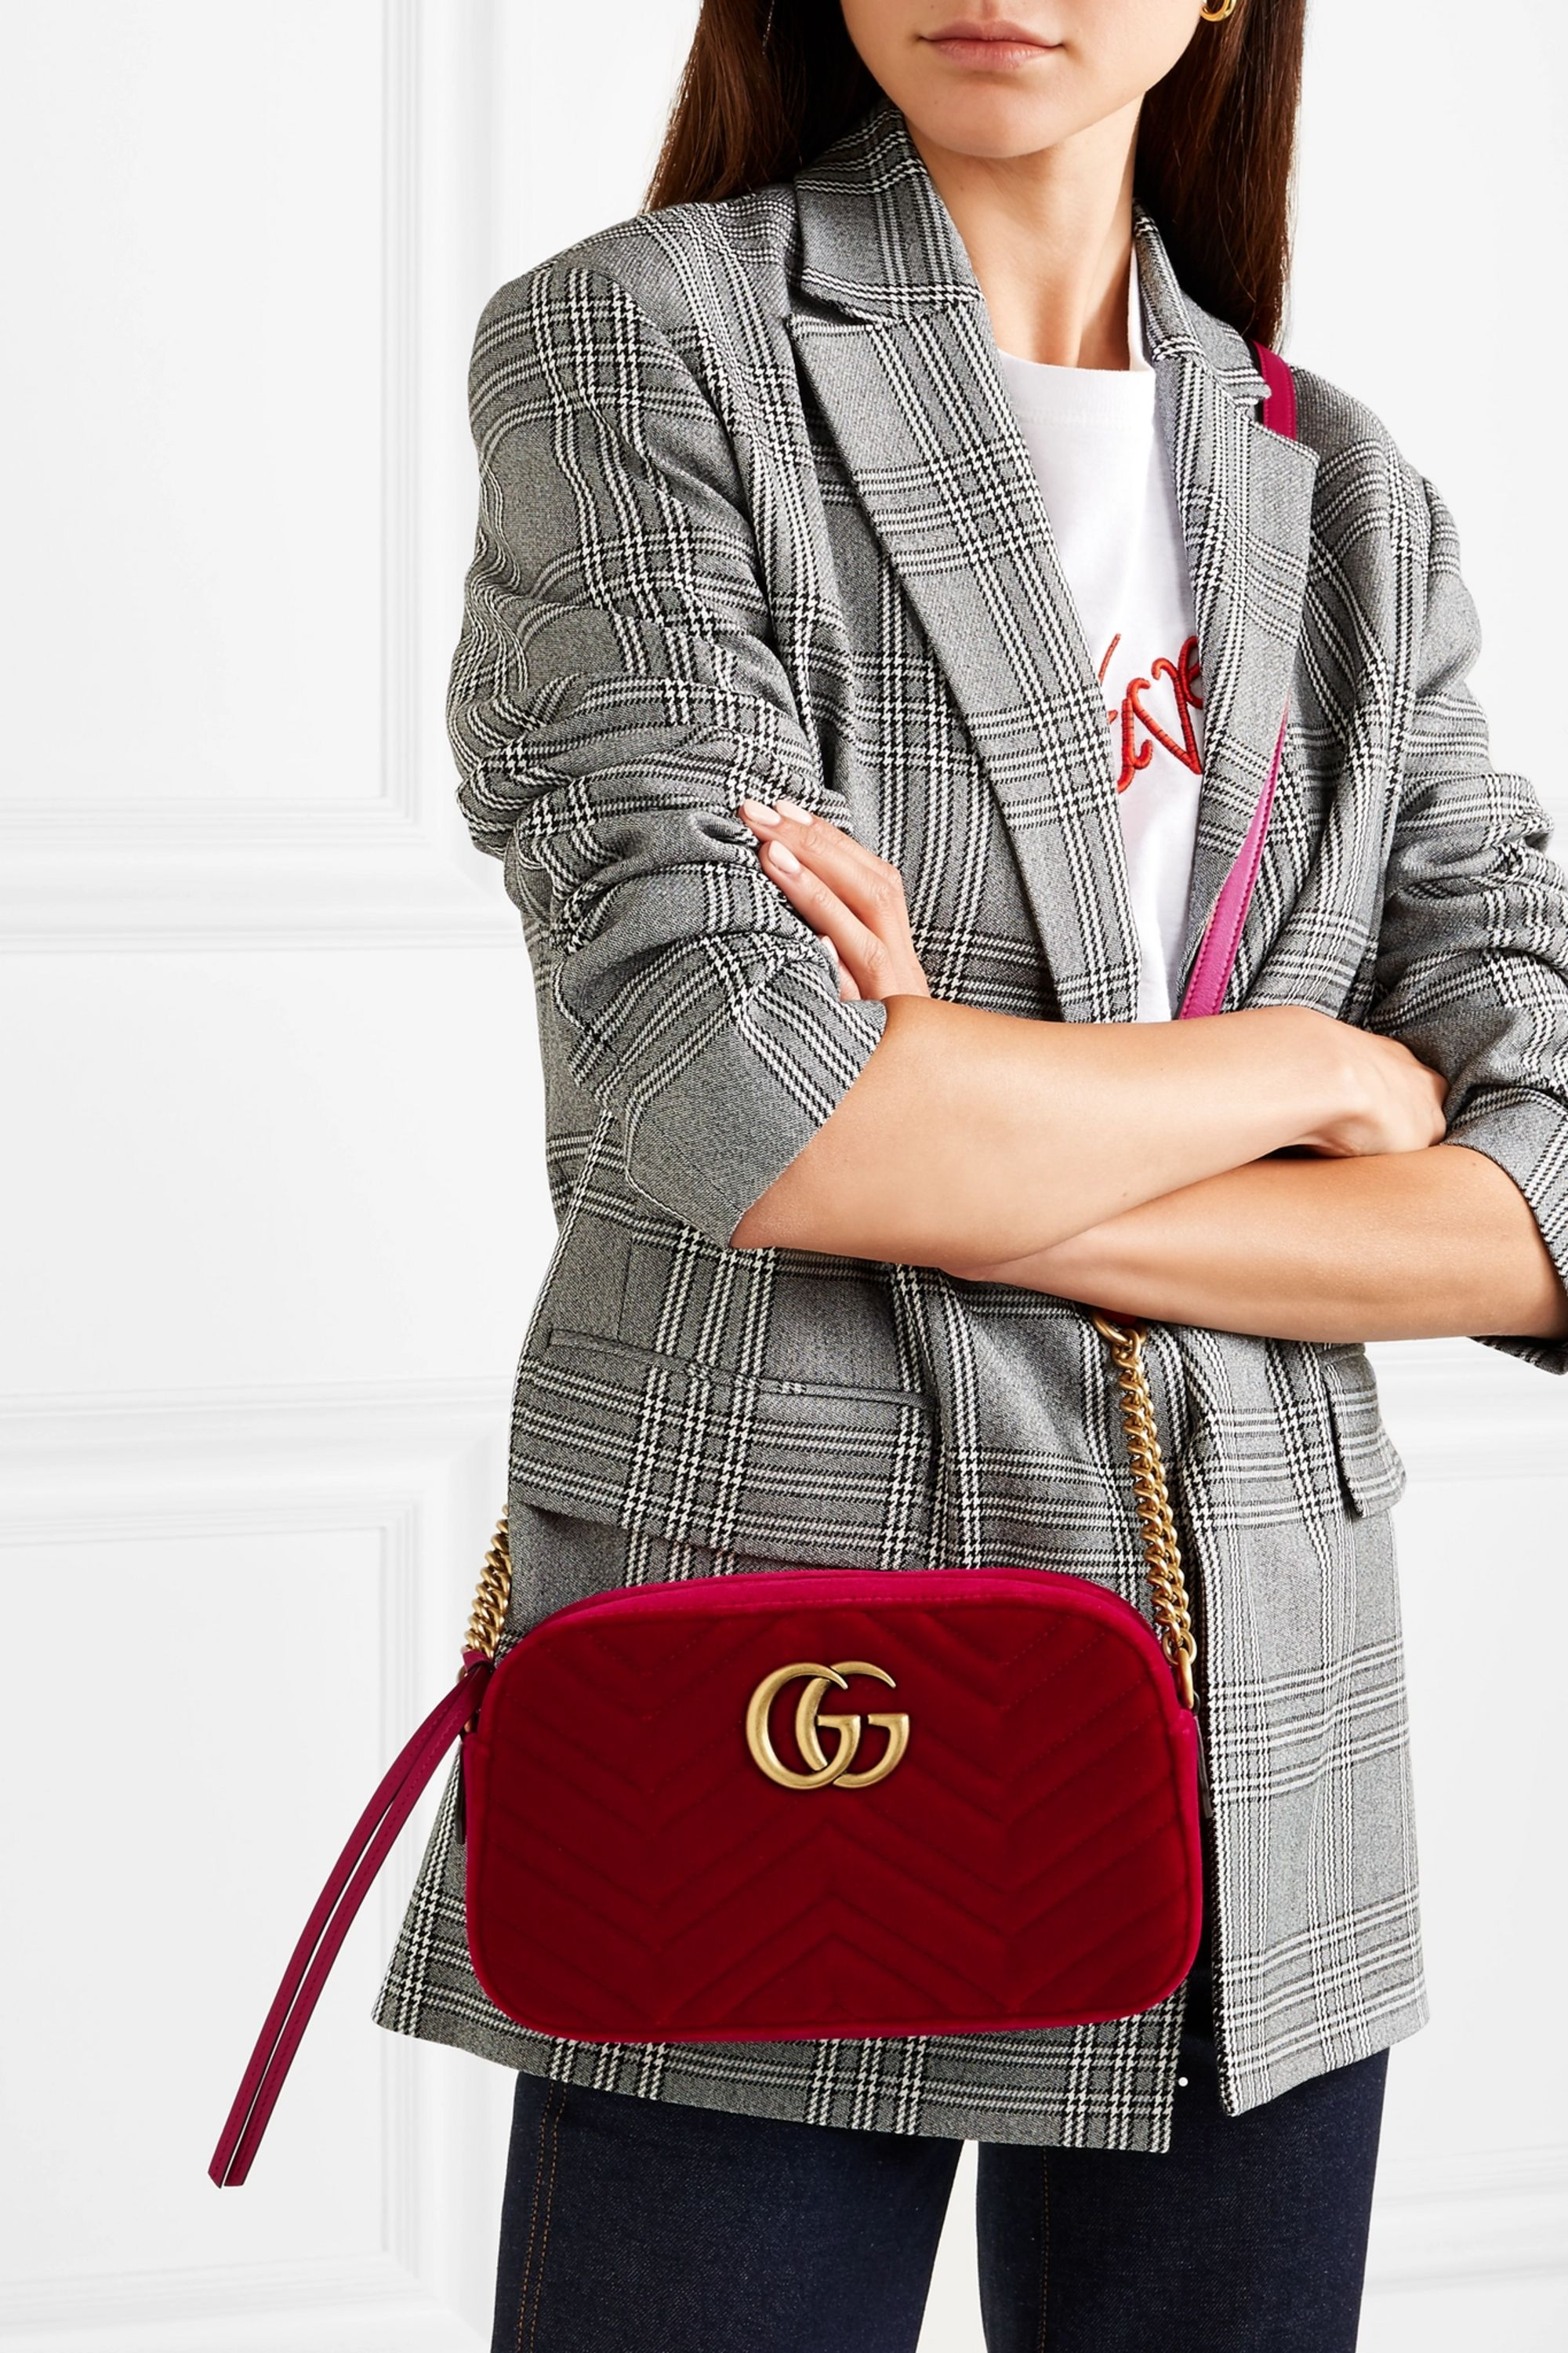 Red Gg Marmont Small Quilted Velvet Shoulder Bag Gucci Net A Porter